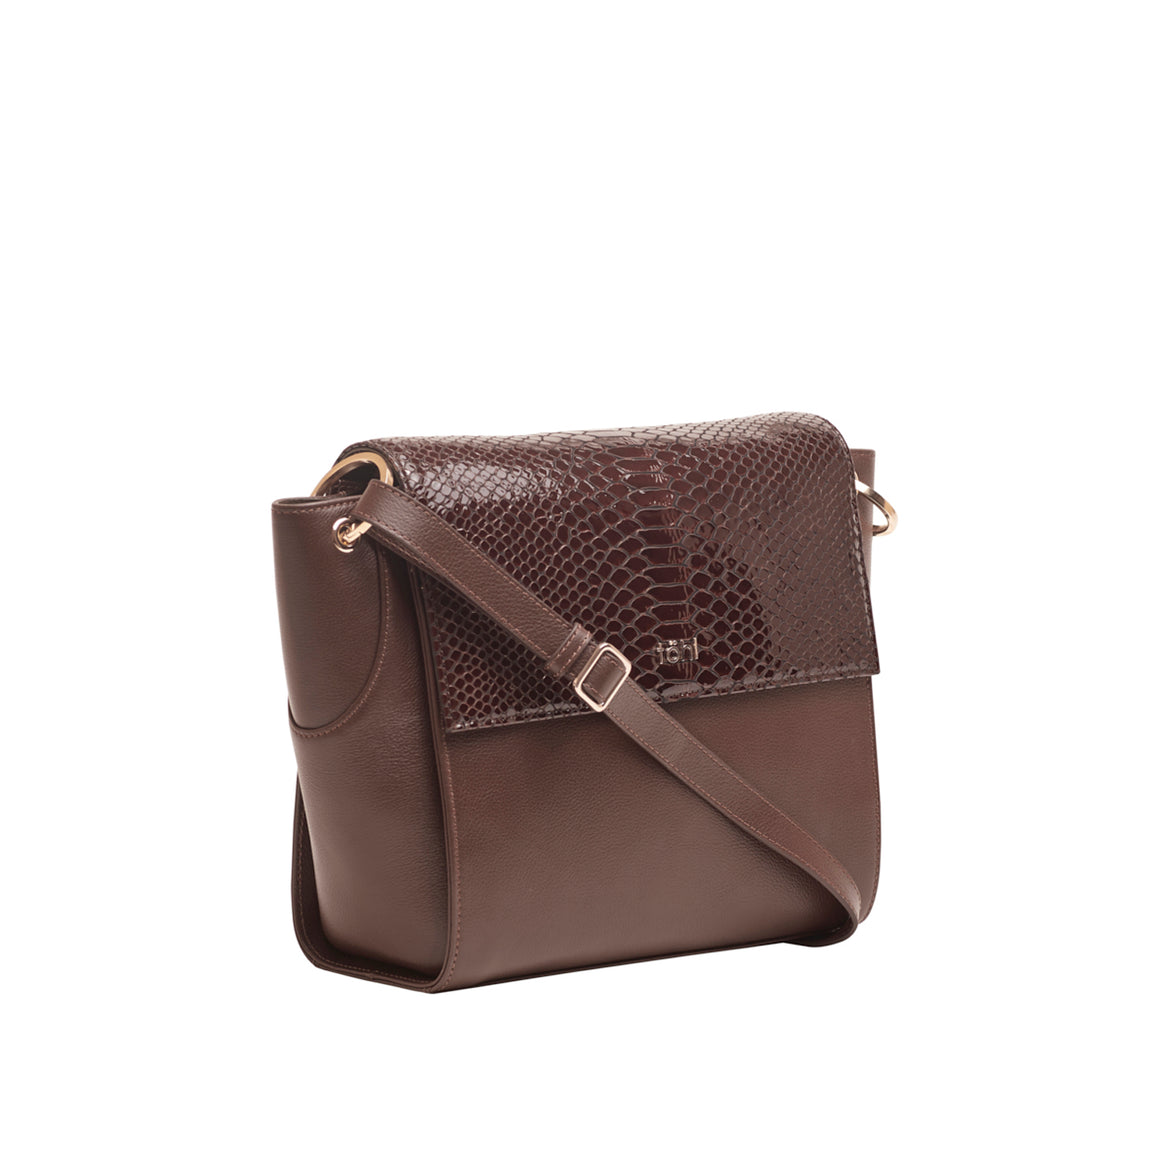 SG 0015 - TOHL CONDESA WOMEN'S SLING BAG - CHOCO